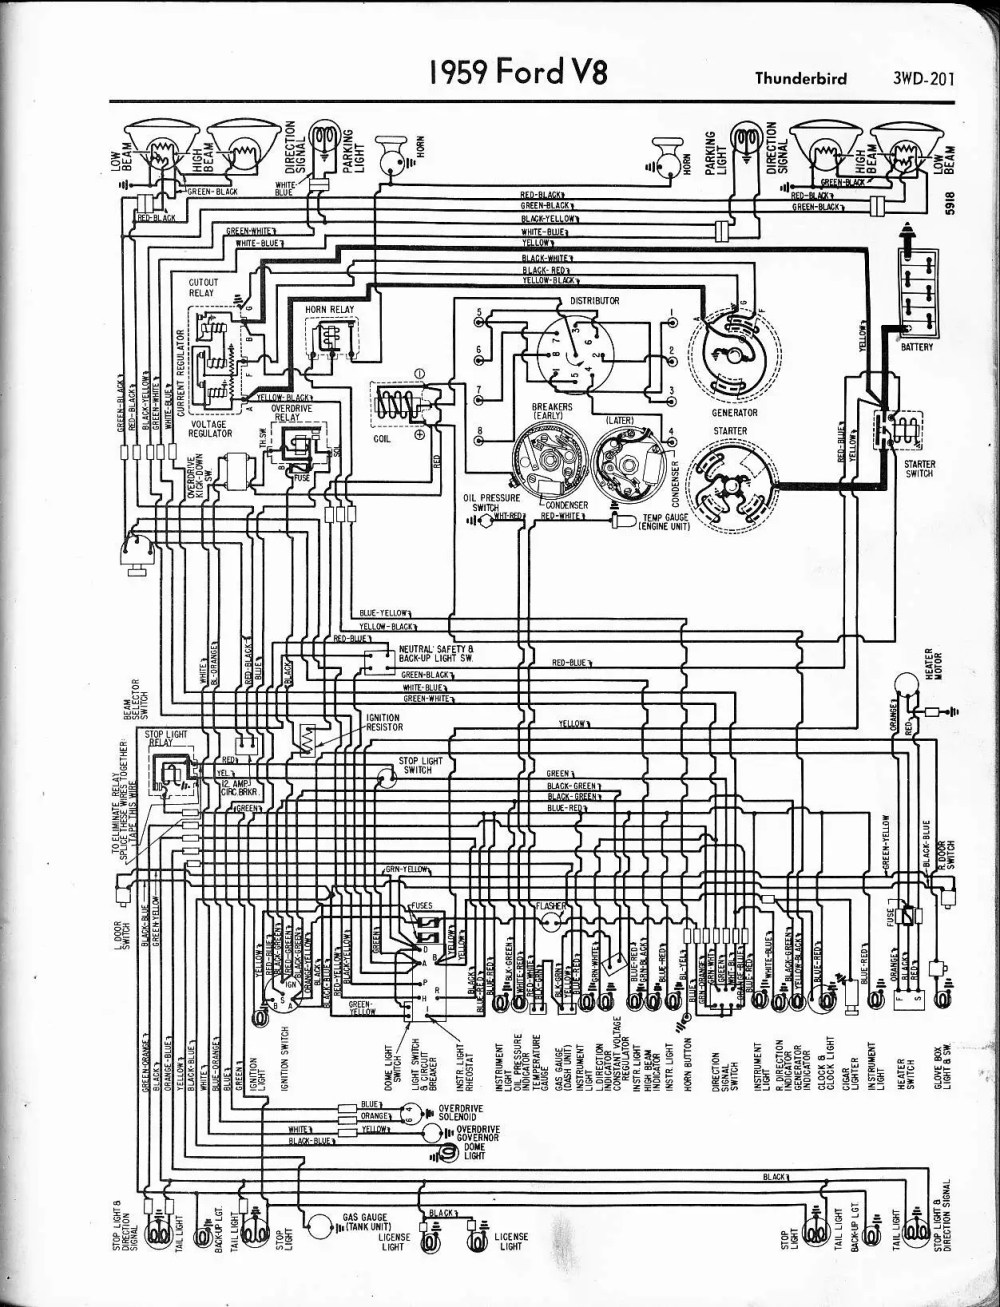 medium resolution of 1970 ford thunderbird fuse box diagram wiring diagram blog 1970 ford thunderbird fuse box diagram